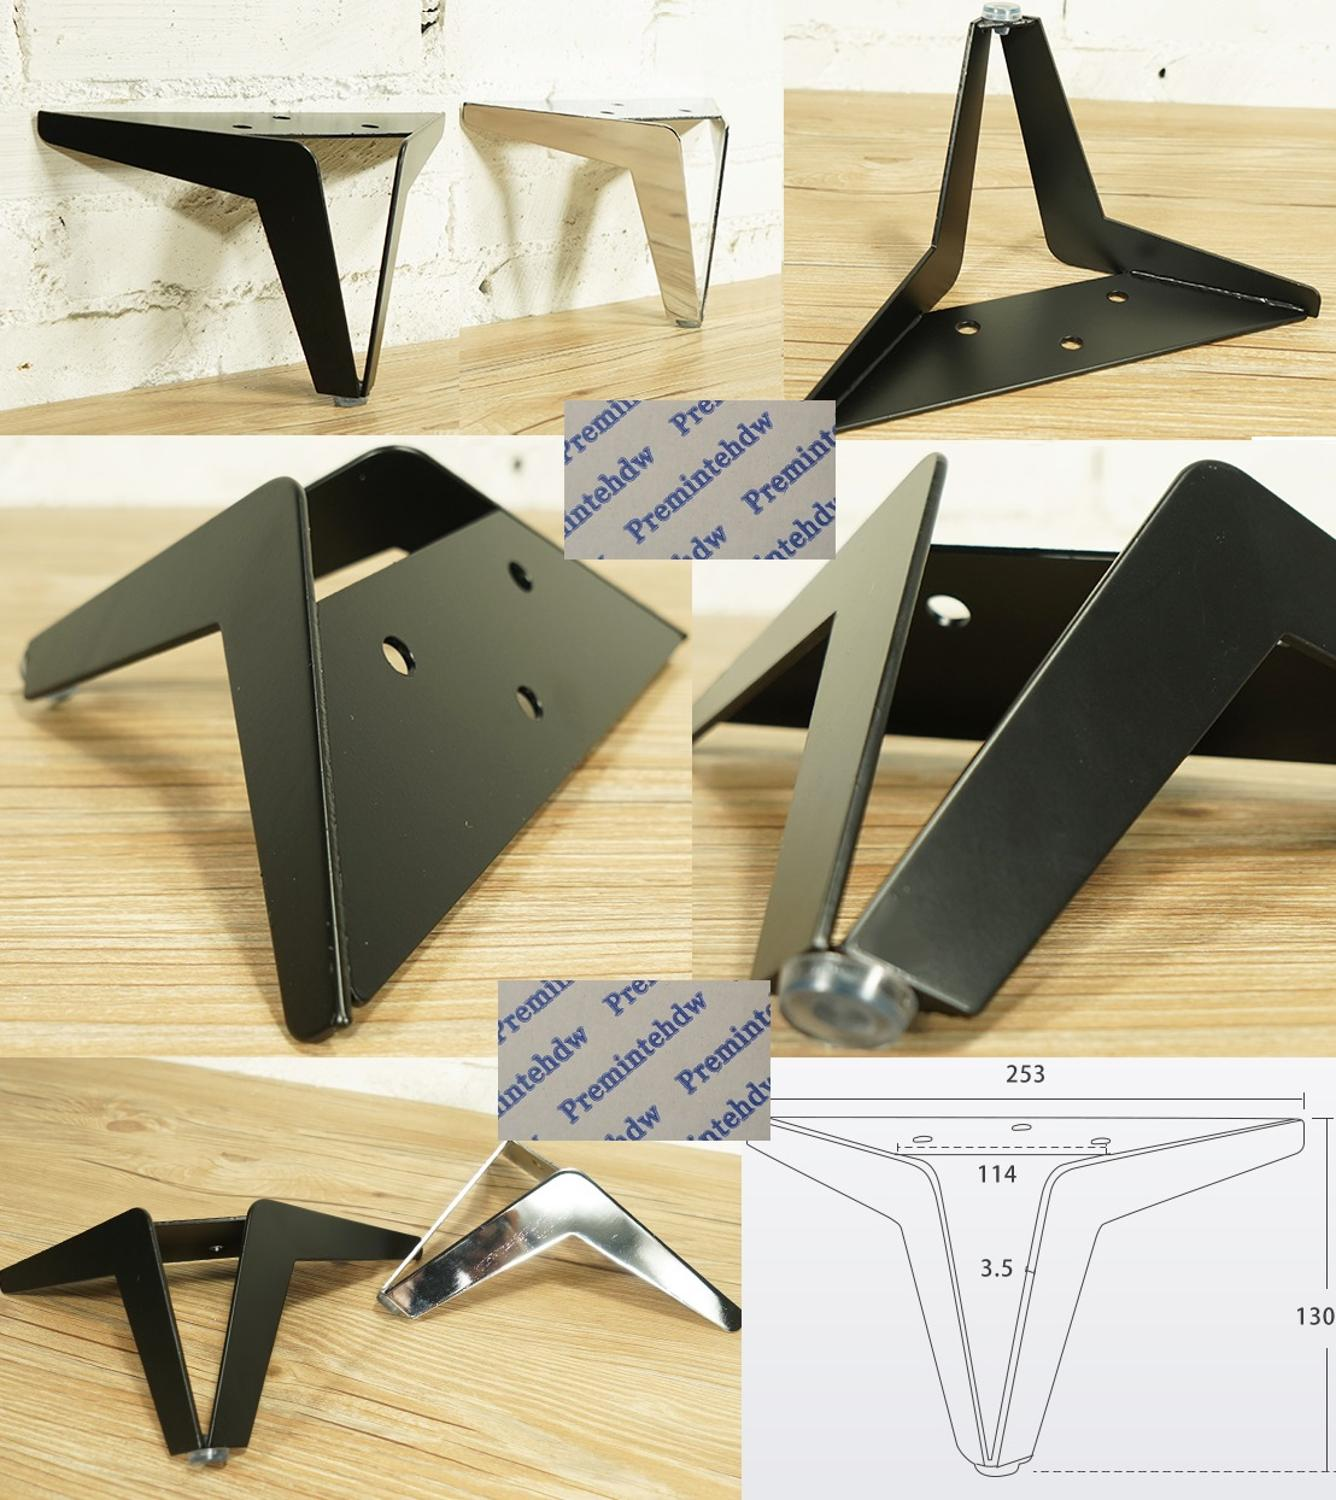 2Pcs/Lot H13CM Matte Black Shiny Silver European Hollow Out Welded Sofa Seat Couch Coffee Tea TV Cupboard Cabinet Feet Leg